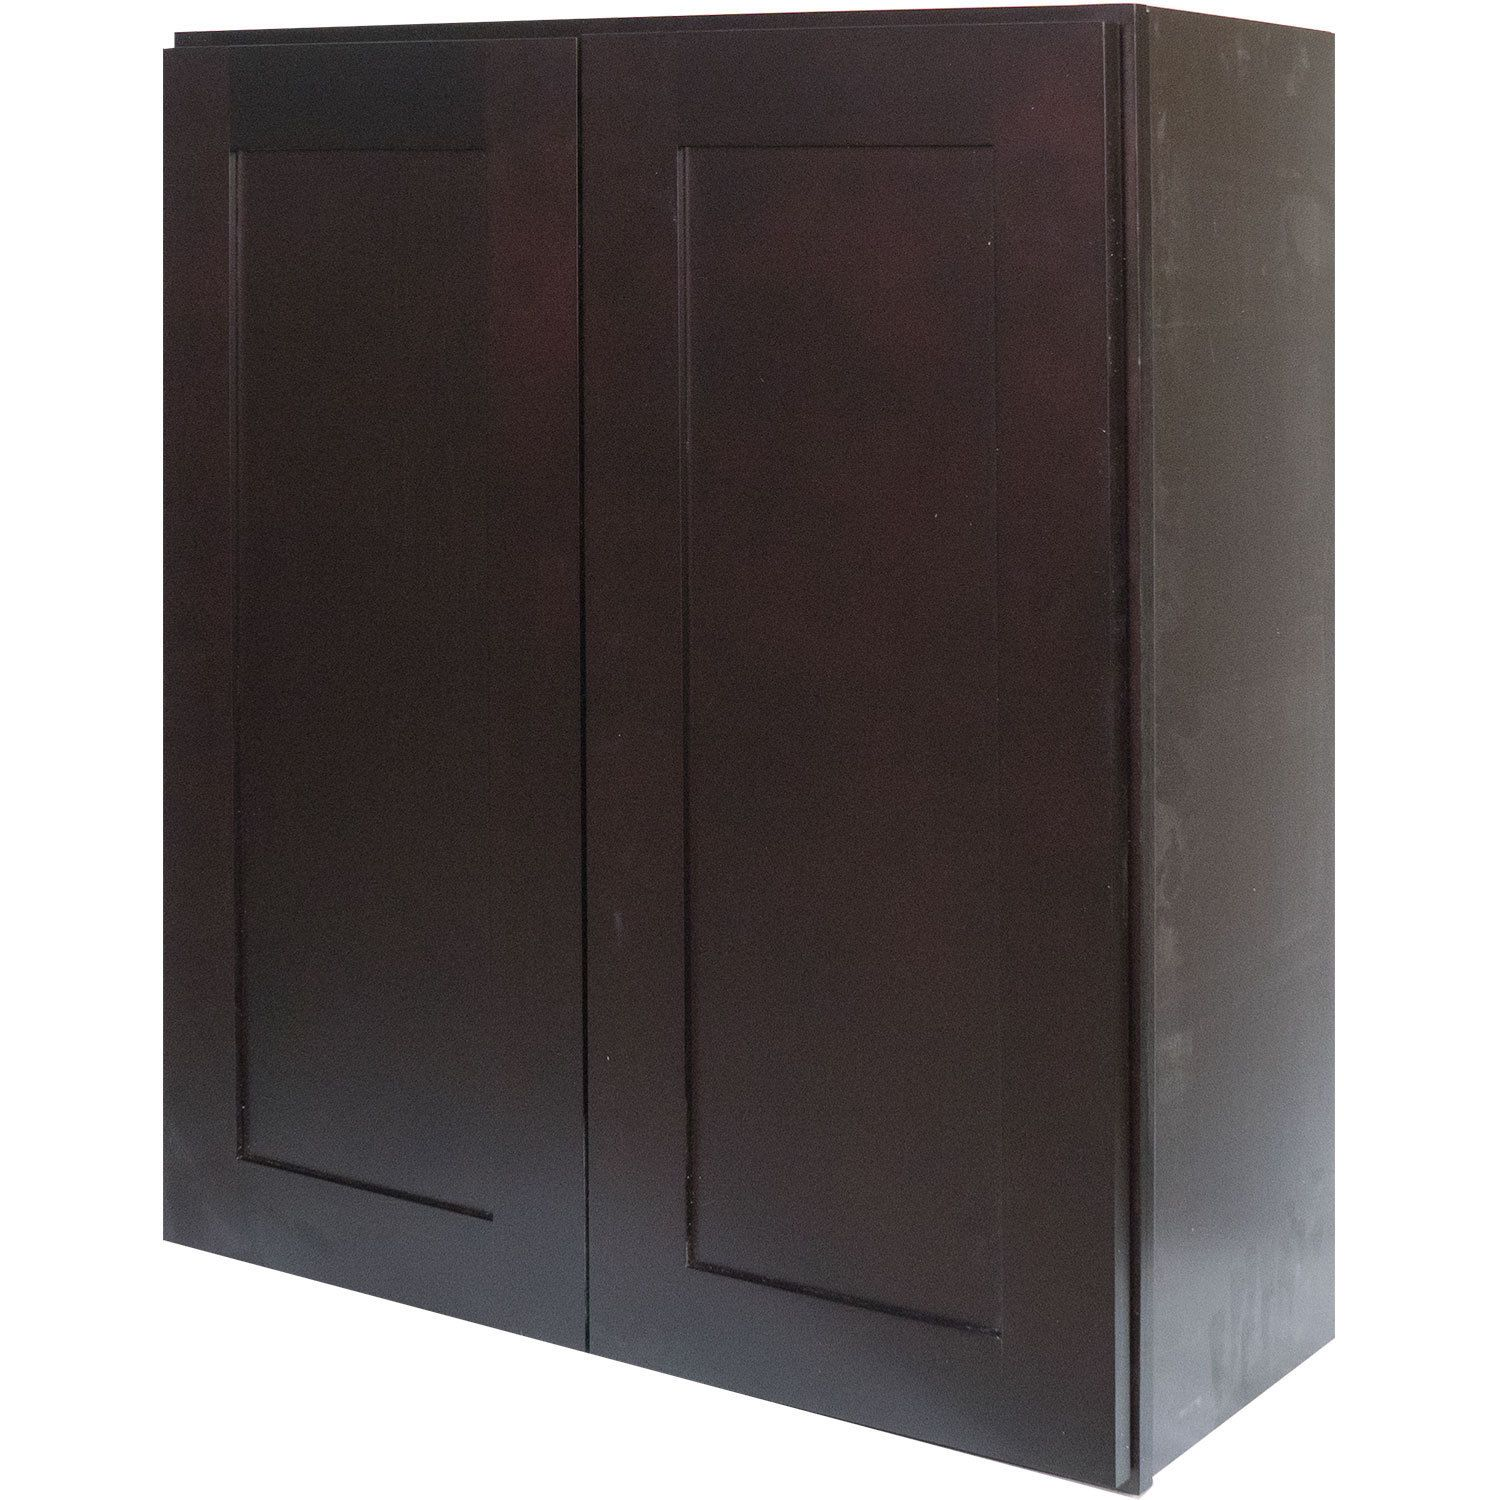 Beau Everyday Cabinets 27 Inch Dark Espresso Shaker Double Door Wall Cabinet  (Dark Espresso Shaker